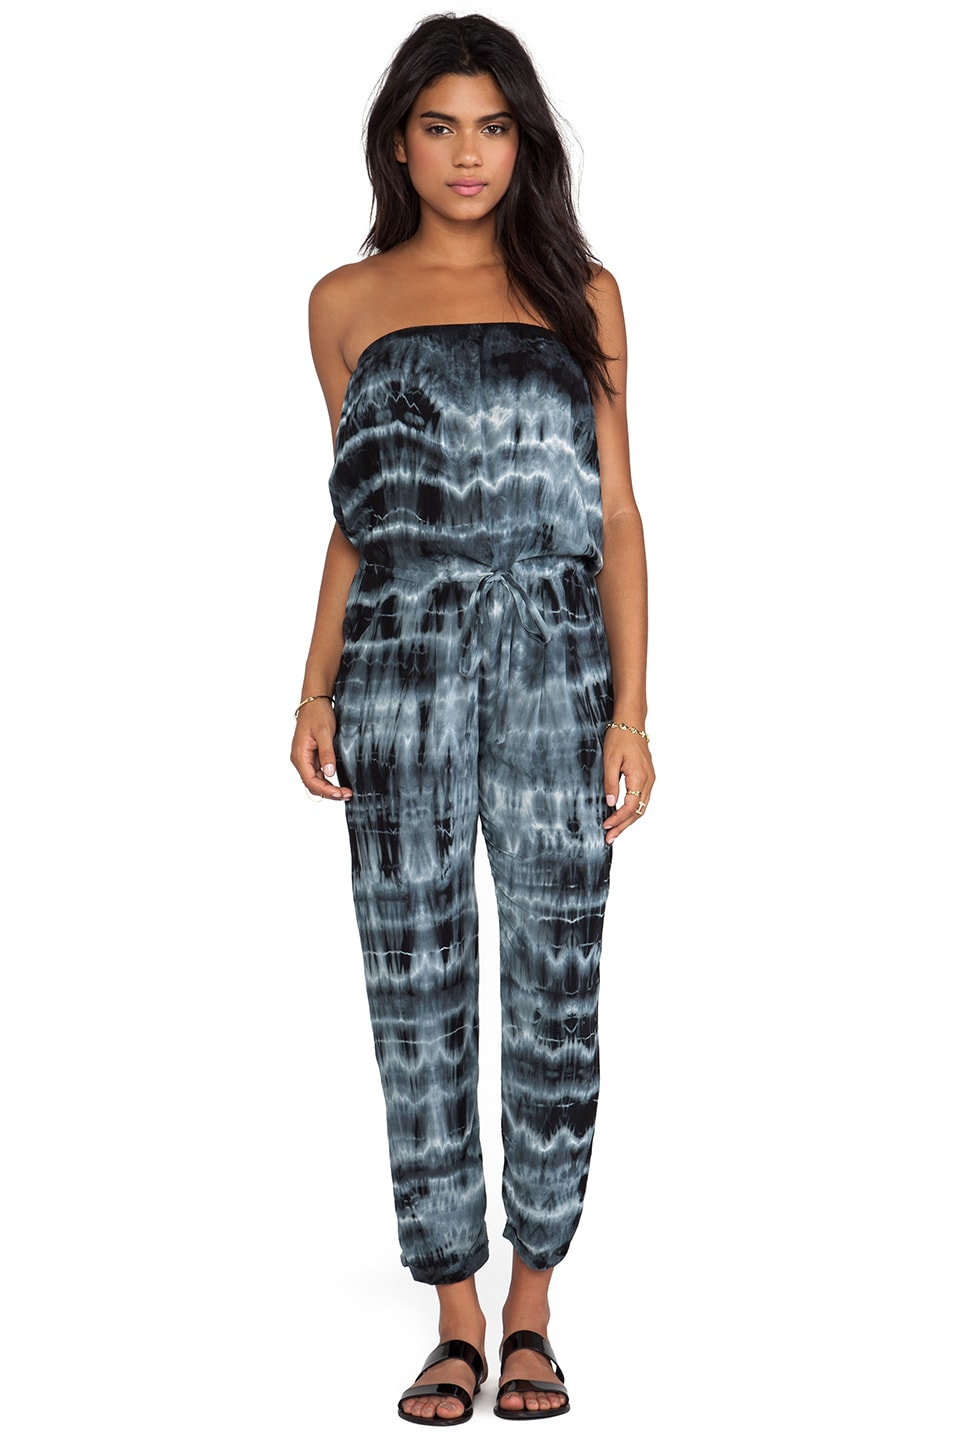 Velvet by Graham & Spencer Bali Tie Dye Rayon Voile Romper in City